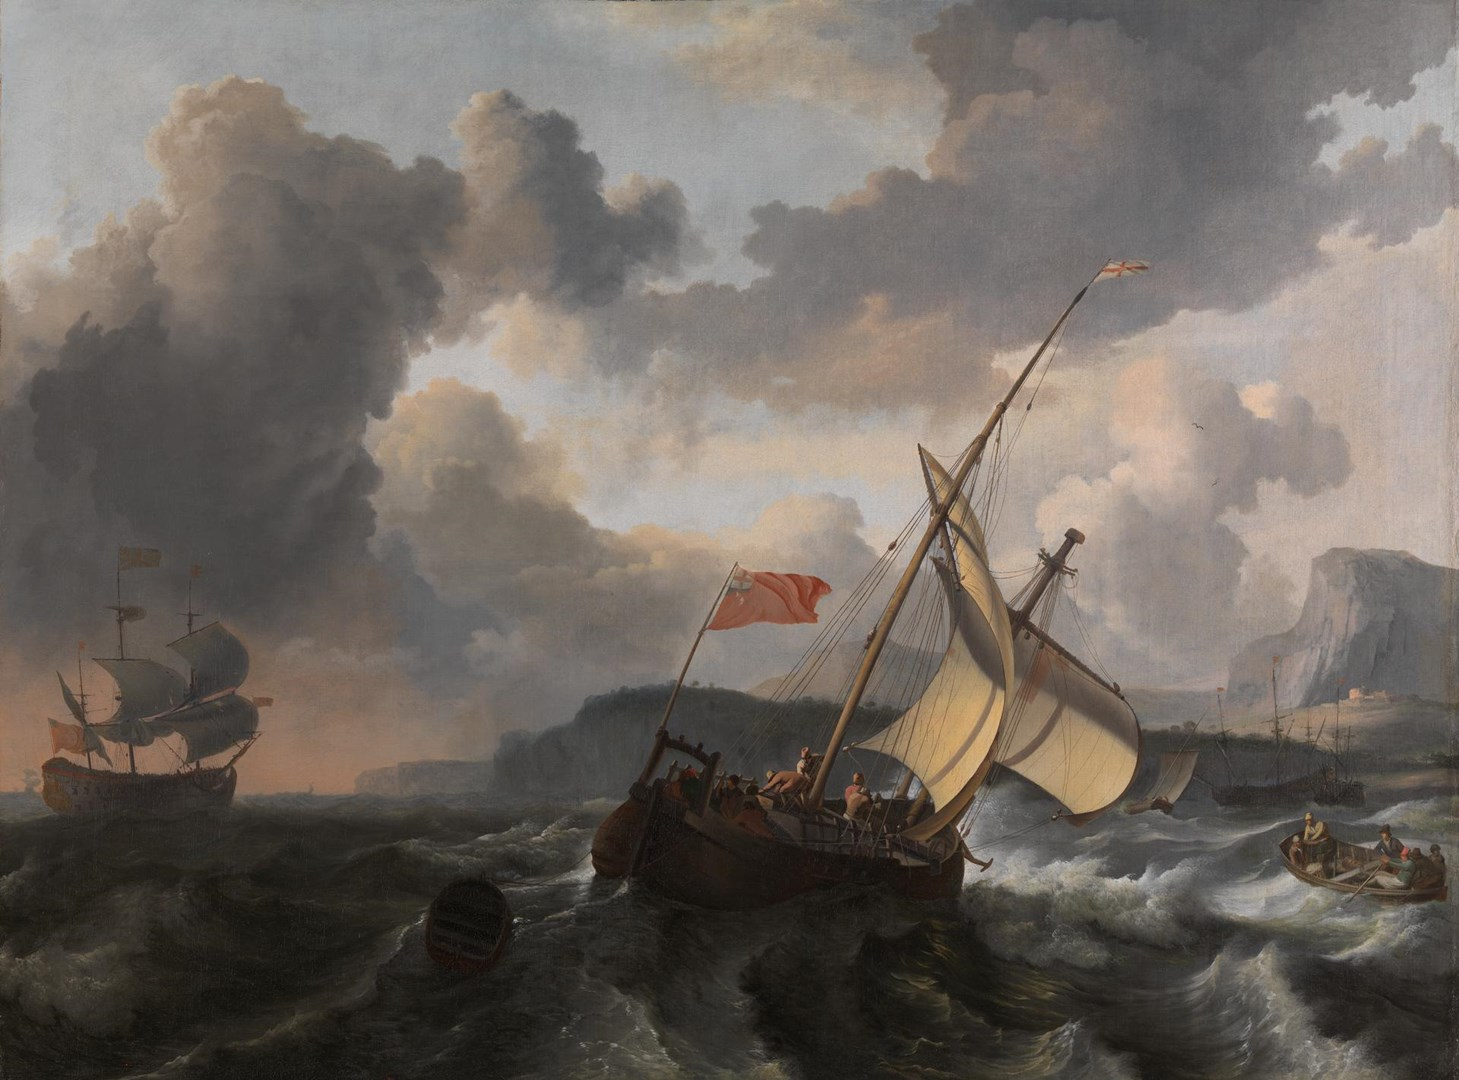 An English Vessel and a Man-of-war in a Rough Sea by Ludolf Bakhuizen